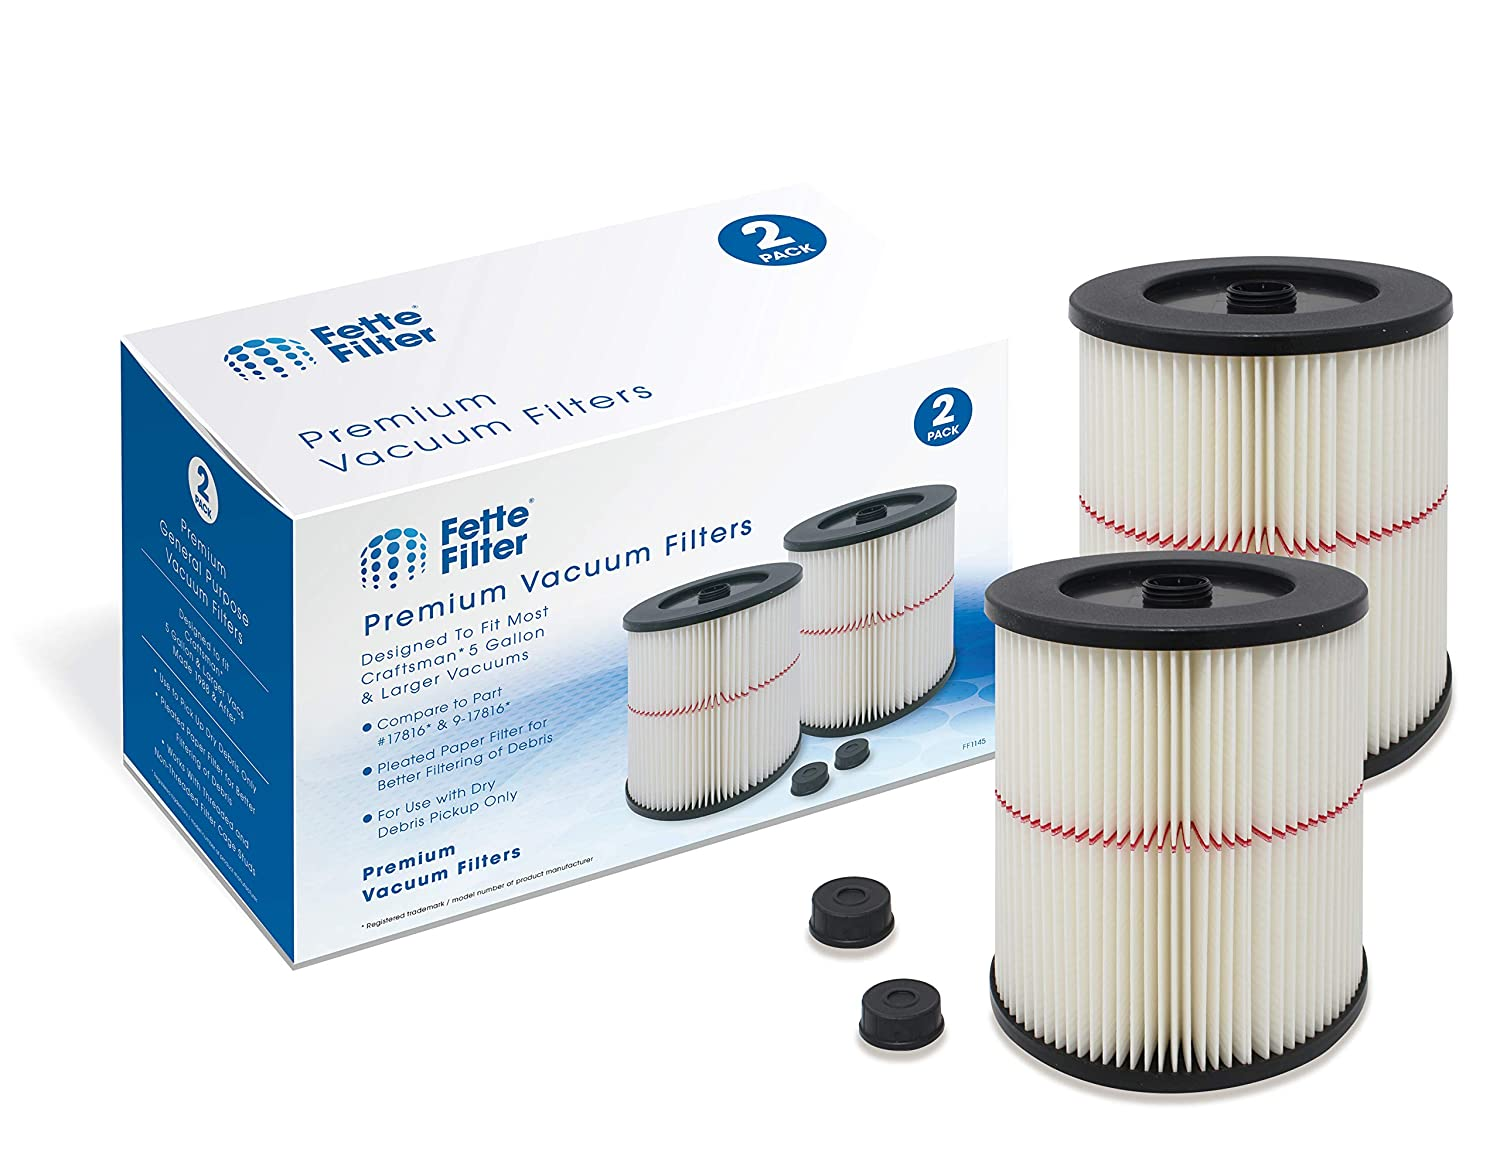 Fette Filter – General Purpose Cartridge Filter Compatible with Craftsman Red Stripe Vac. Compare to Part # 17816 & 9-17816. (Pack of 2)